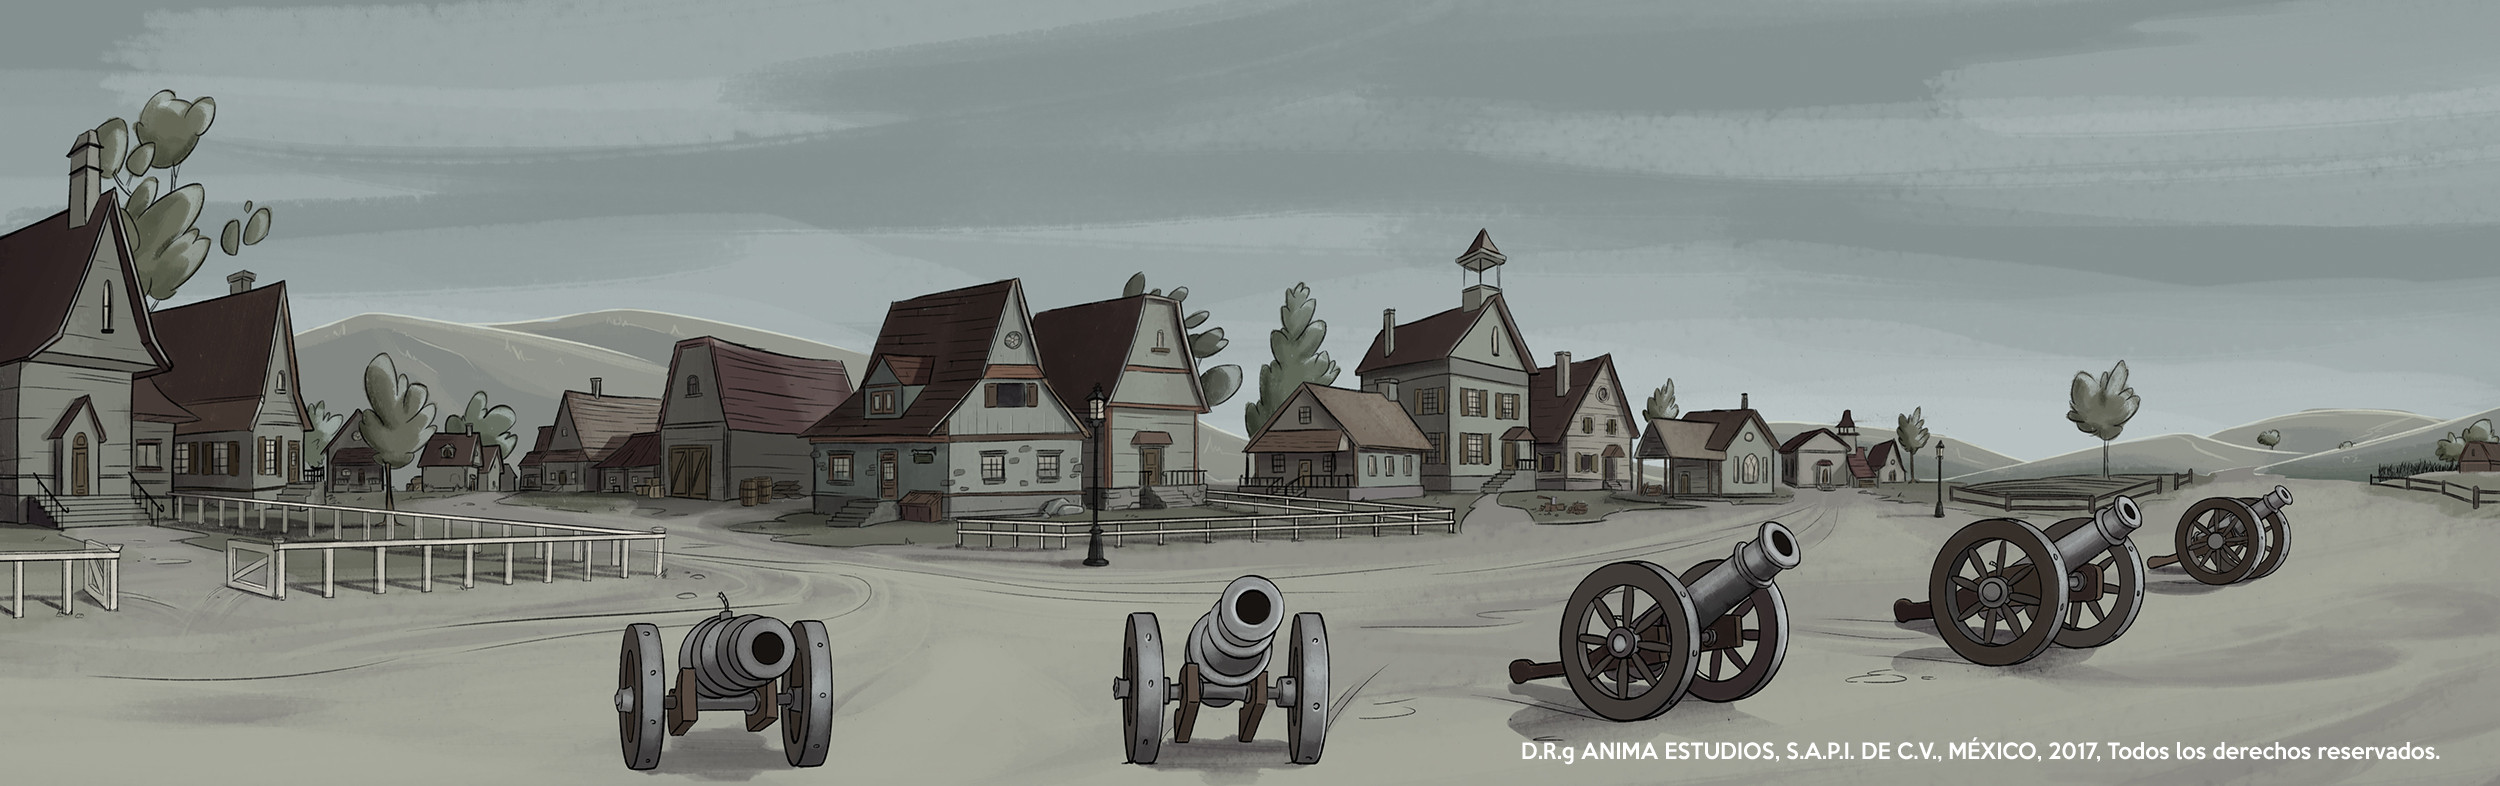 The town outskirts, with day palette.